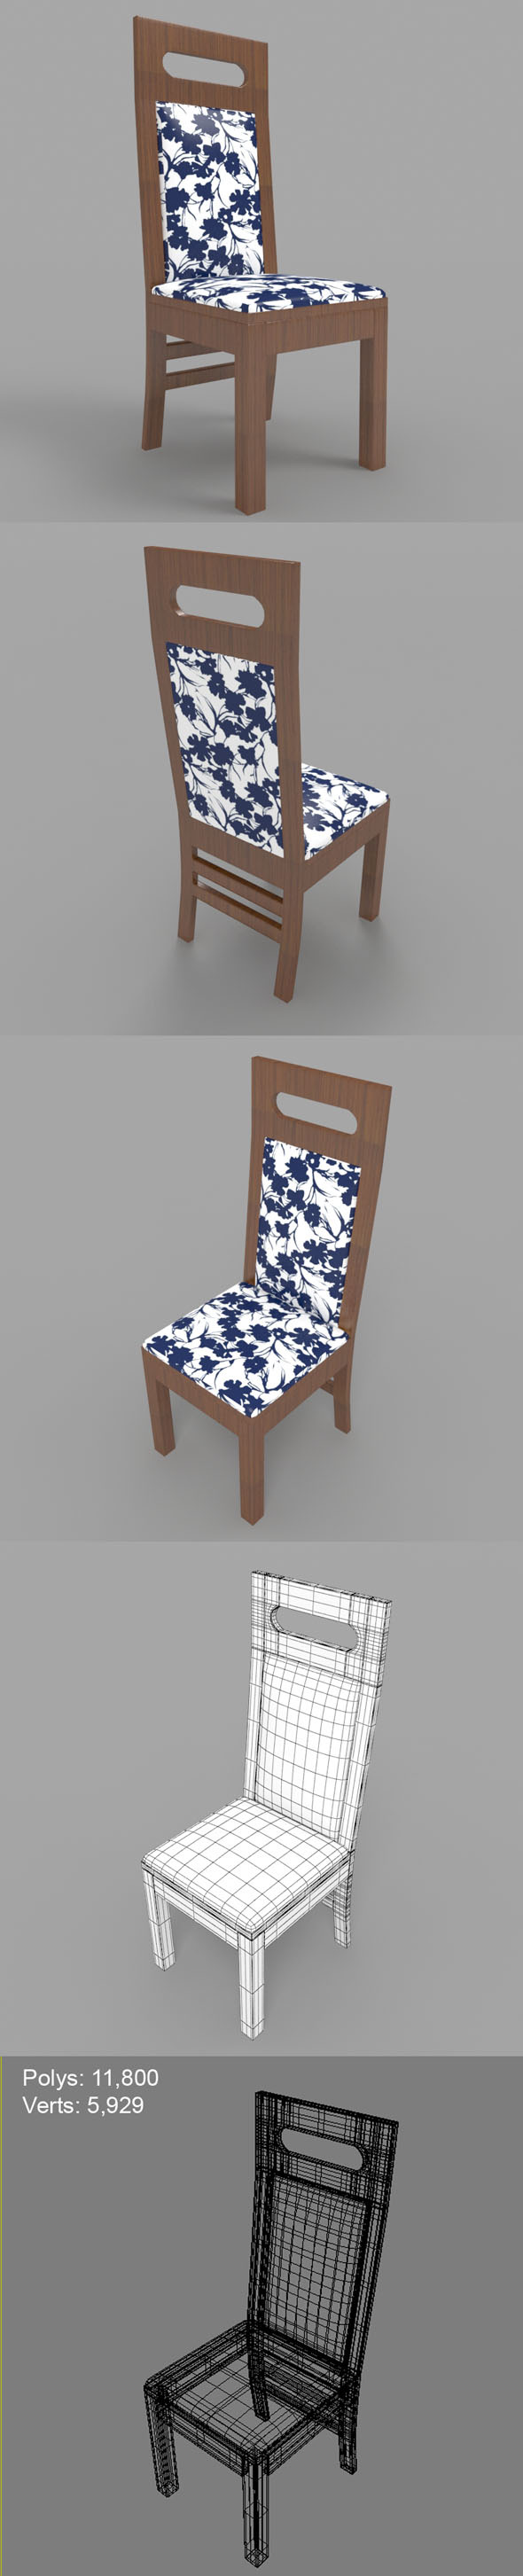 3DOcean Dining Chair-3 11402373